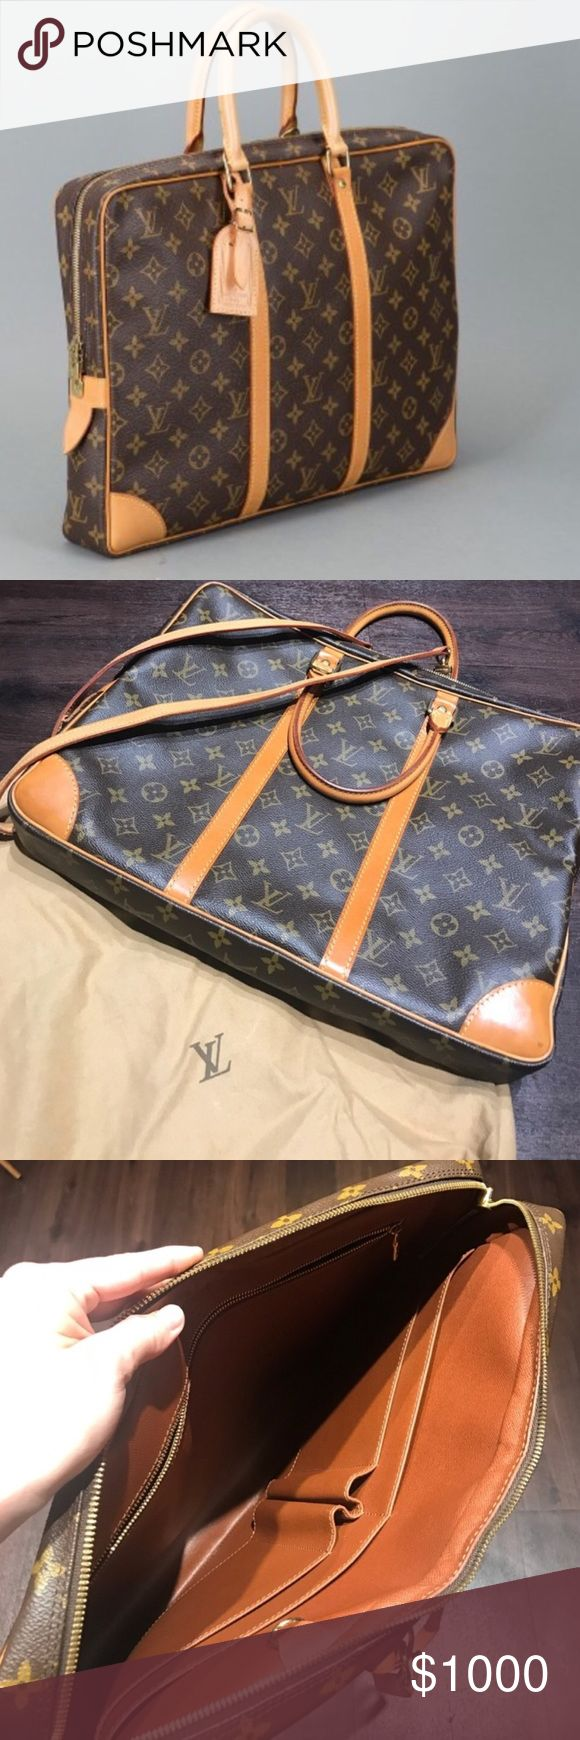 Louis Vuitton Briefcase 💼 Real, comes with dust bag and shoulder straps Louis Vuitton Bags Briefcases